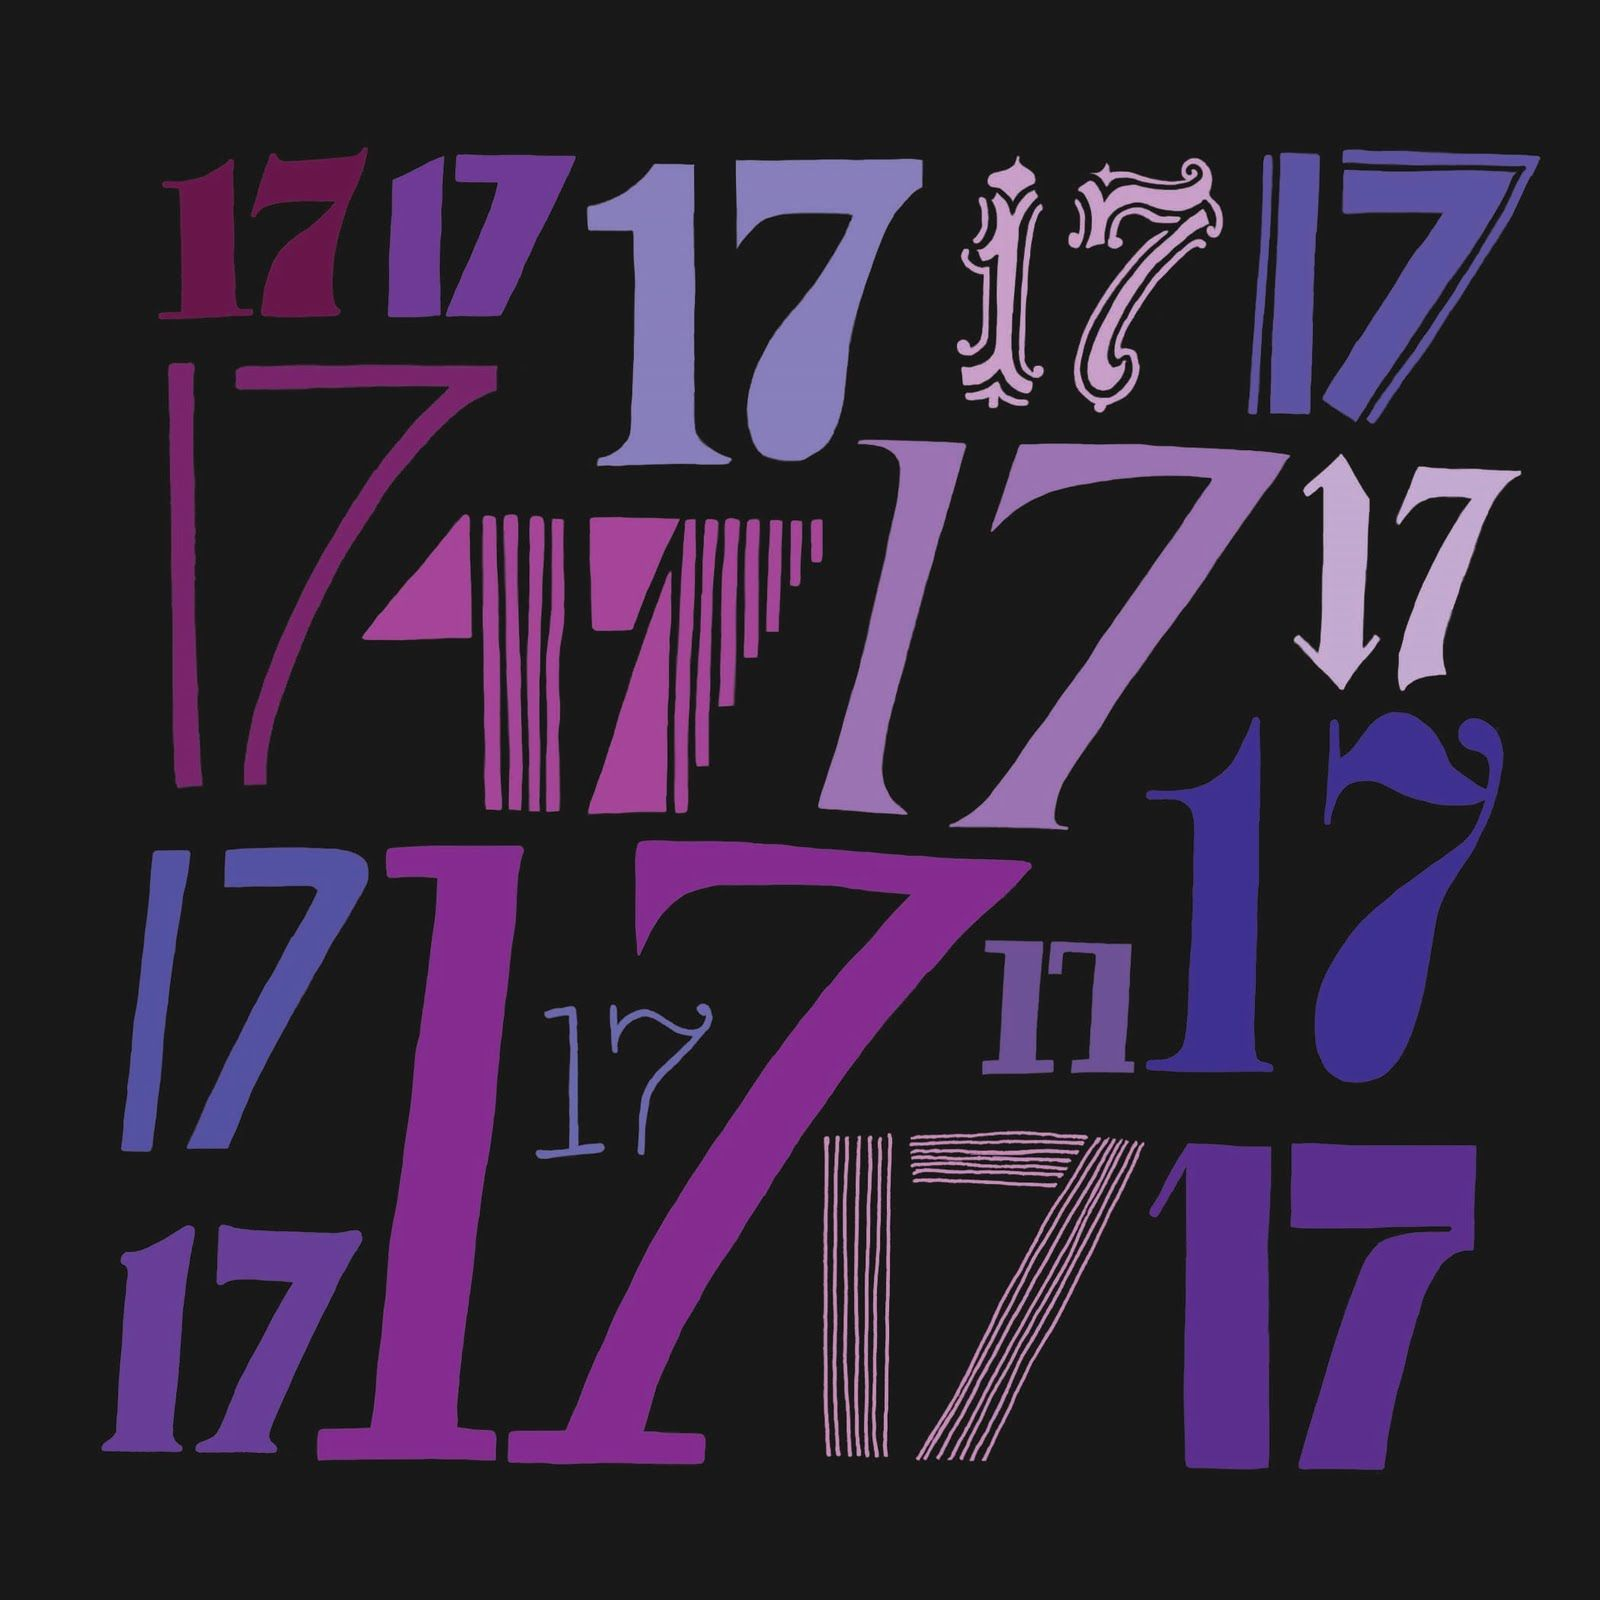 the number 17 in purple | The number 17, drawn in 17 ...